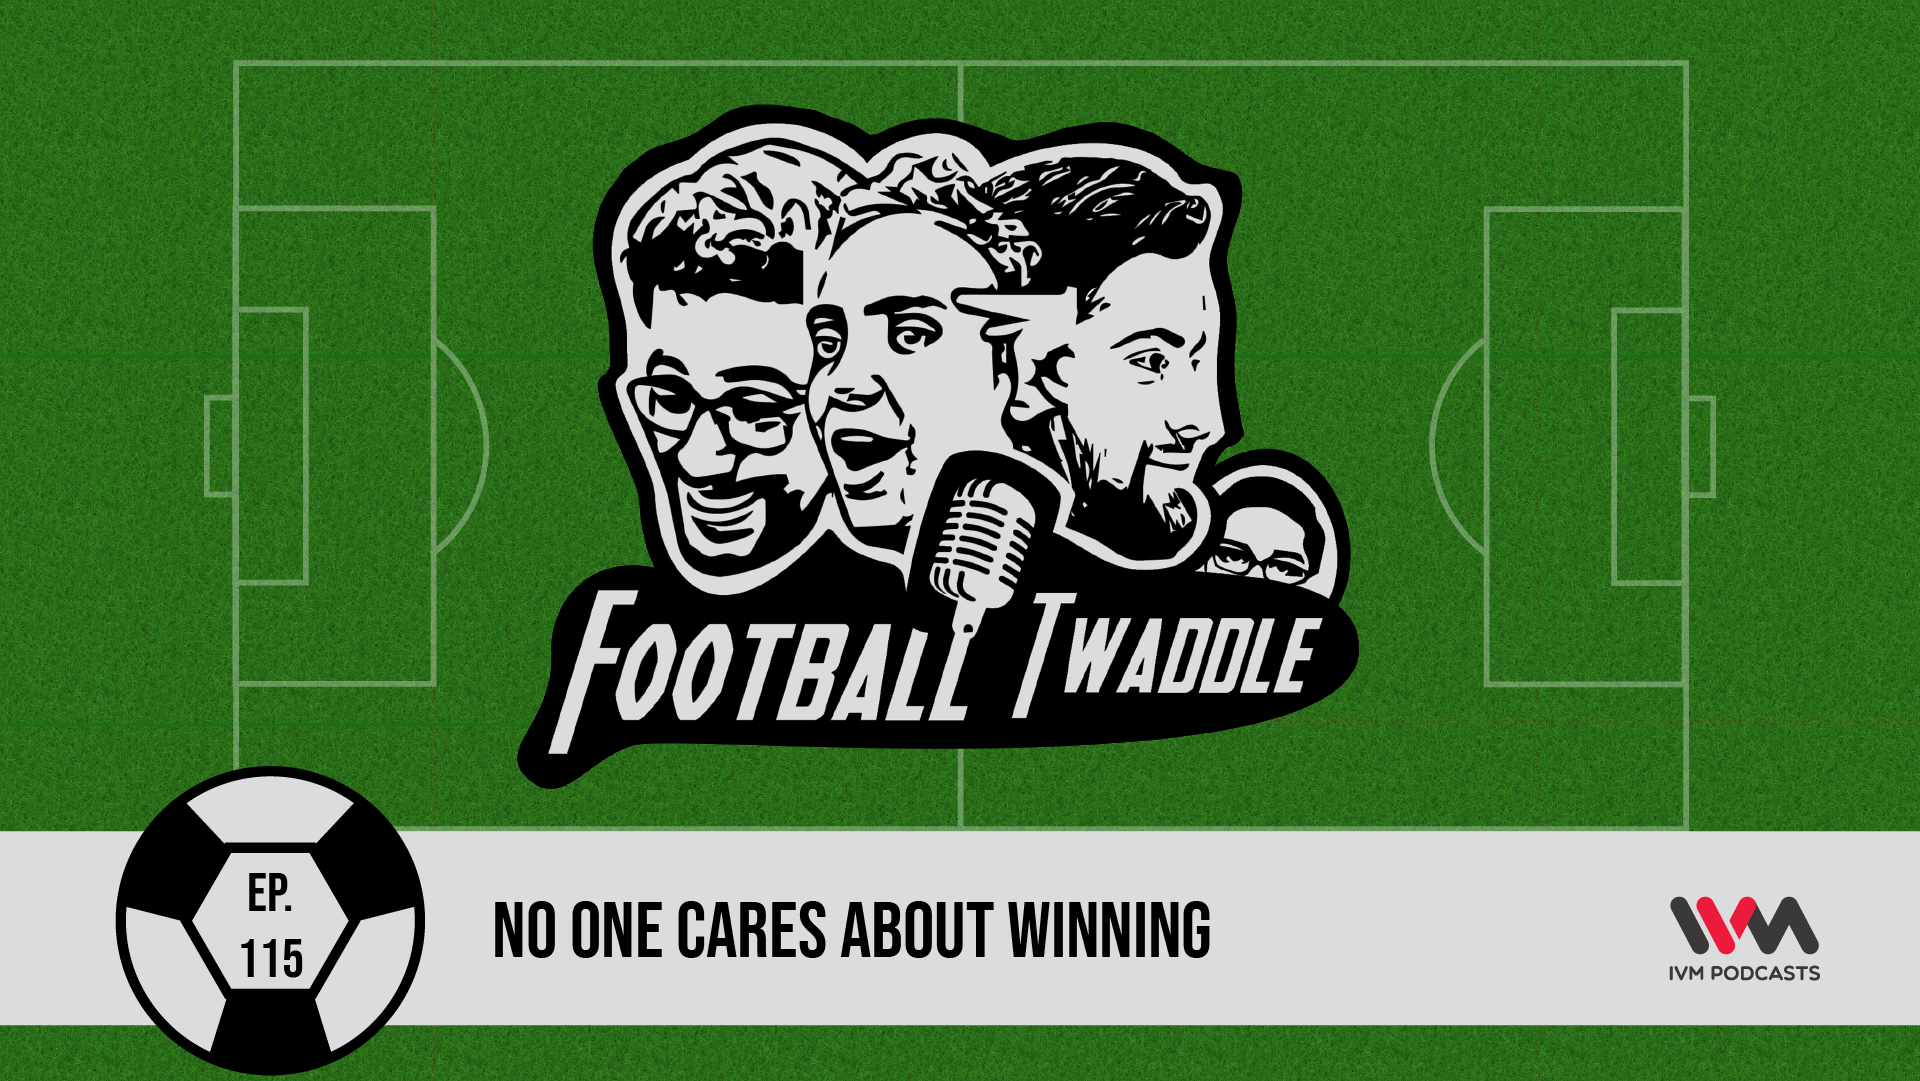 FootballTwaddleEpisode115.png